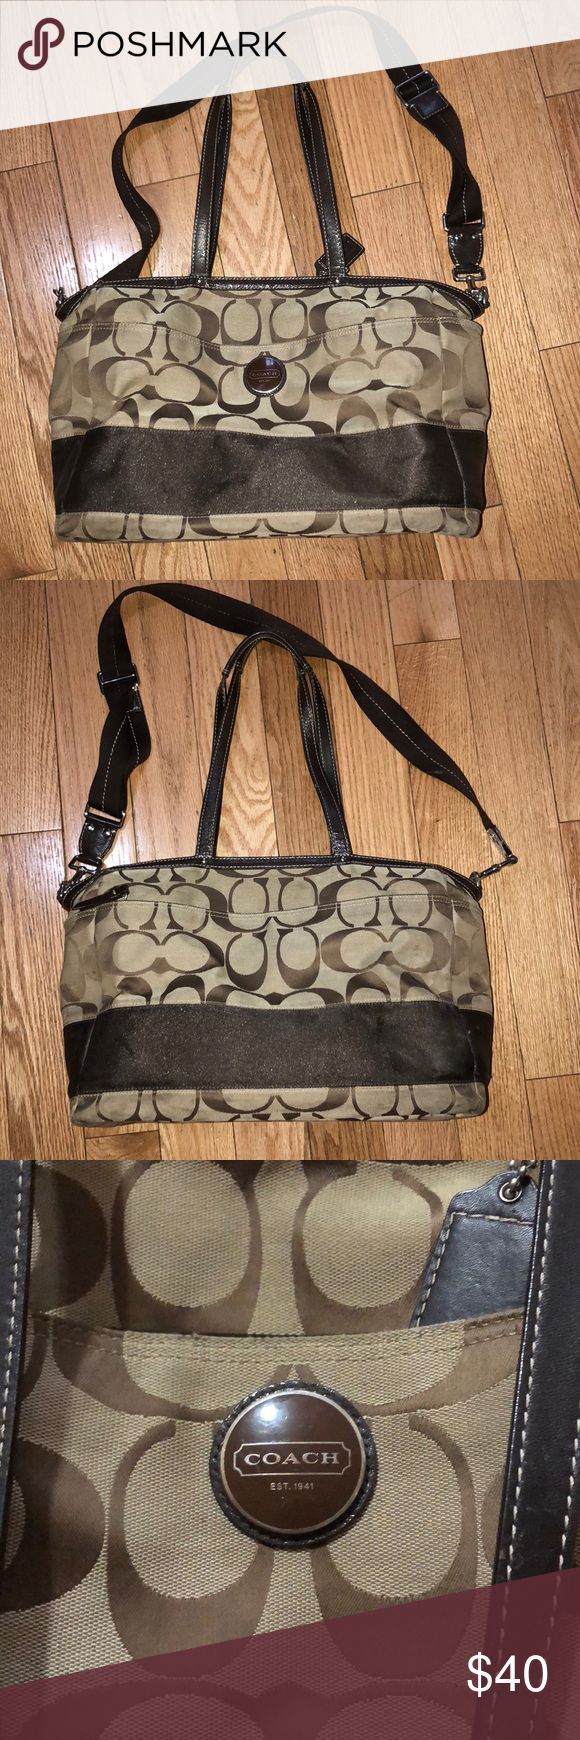 Coach diaper bag Coach diaper bag brown, used but in really good condition Coach Bags Baby Bags